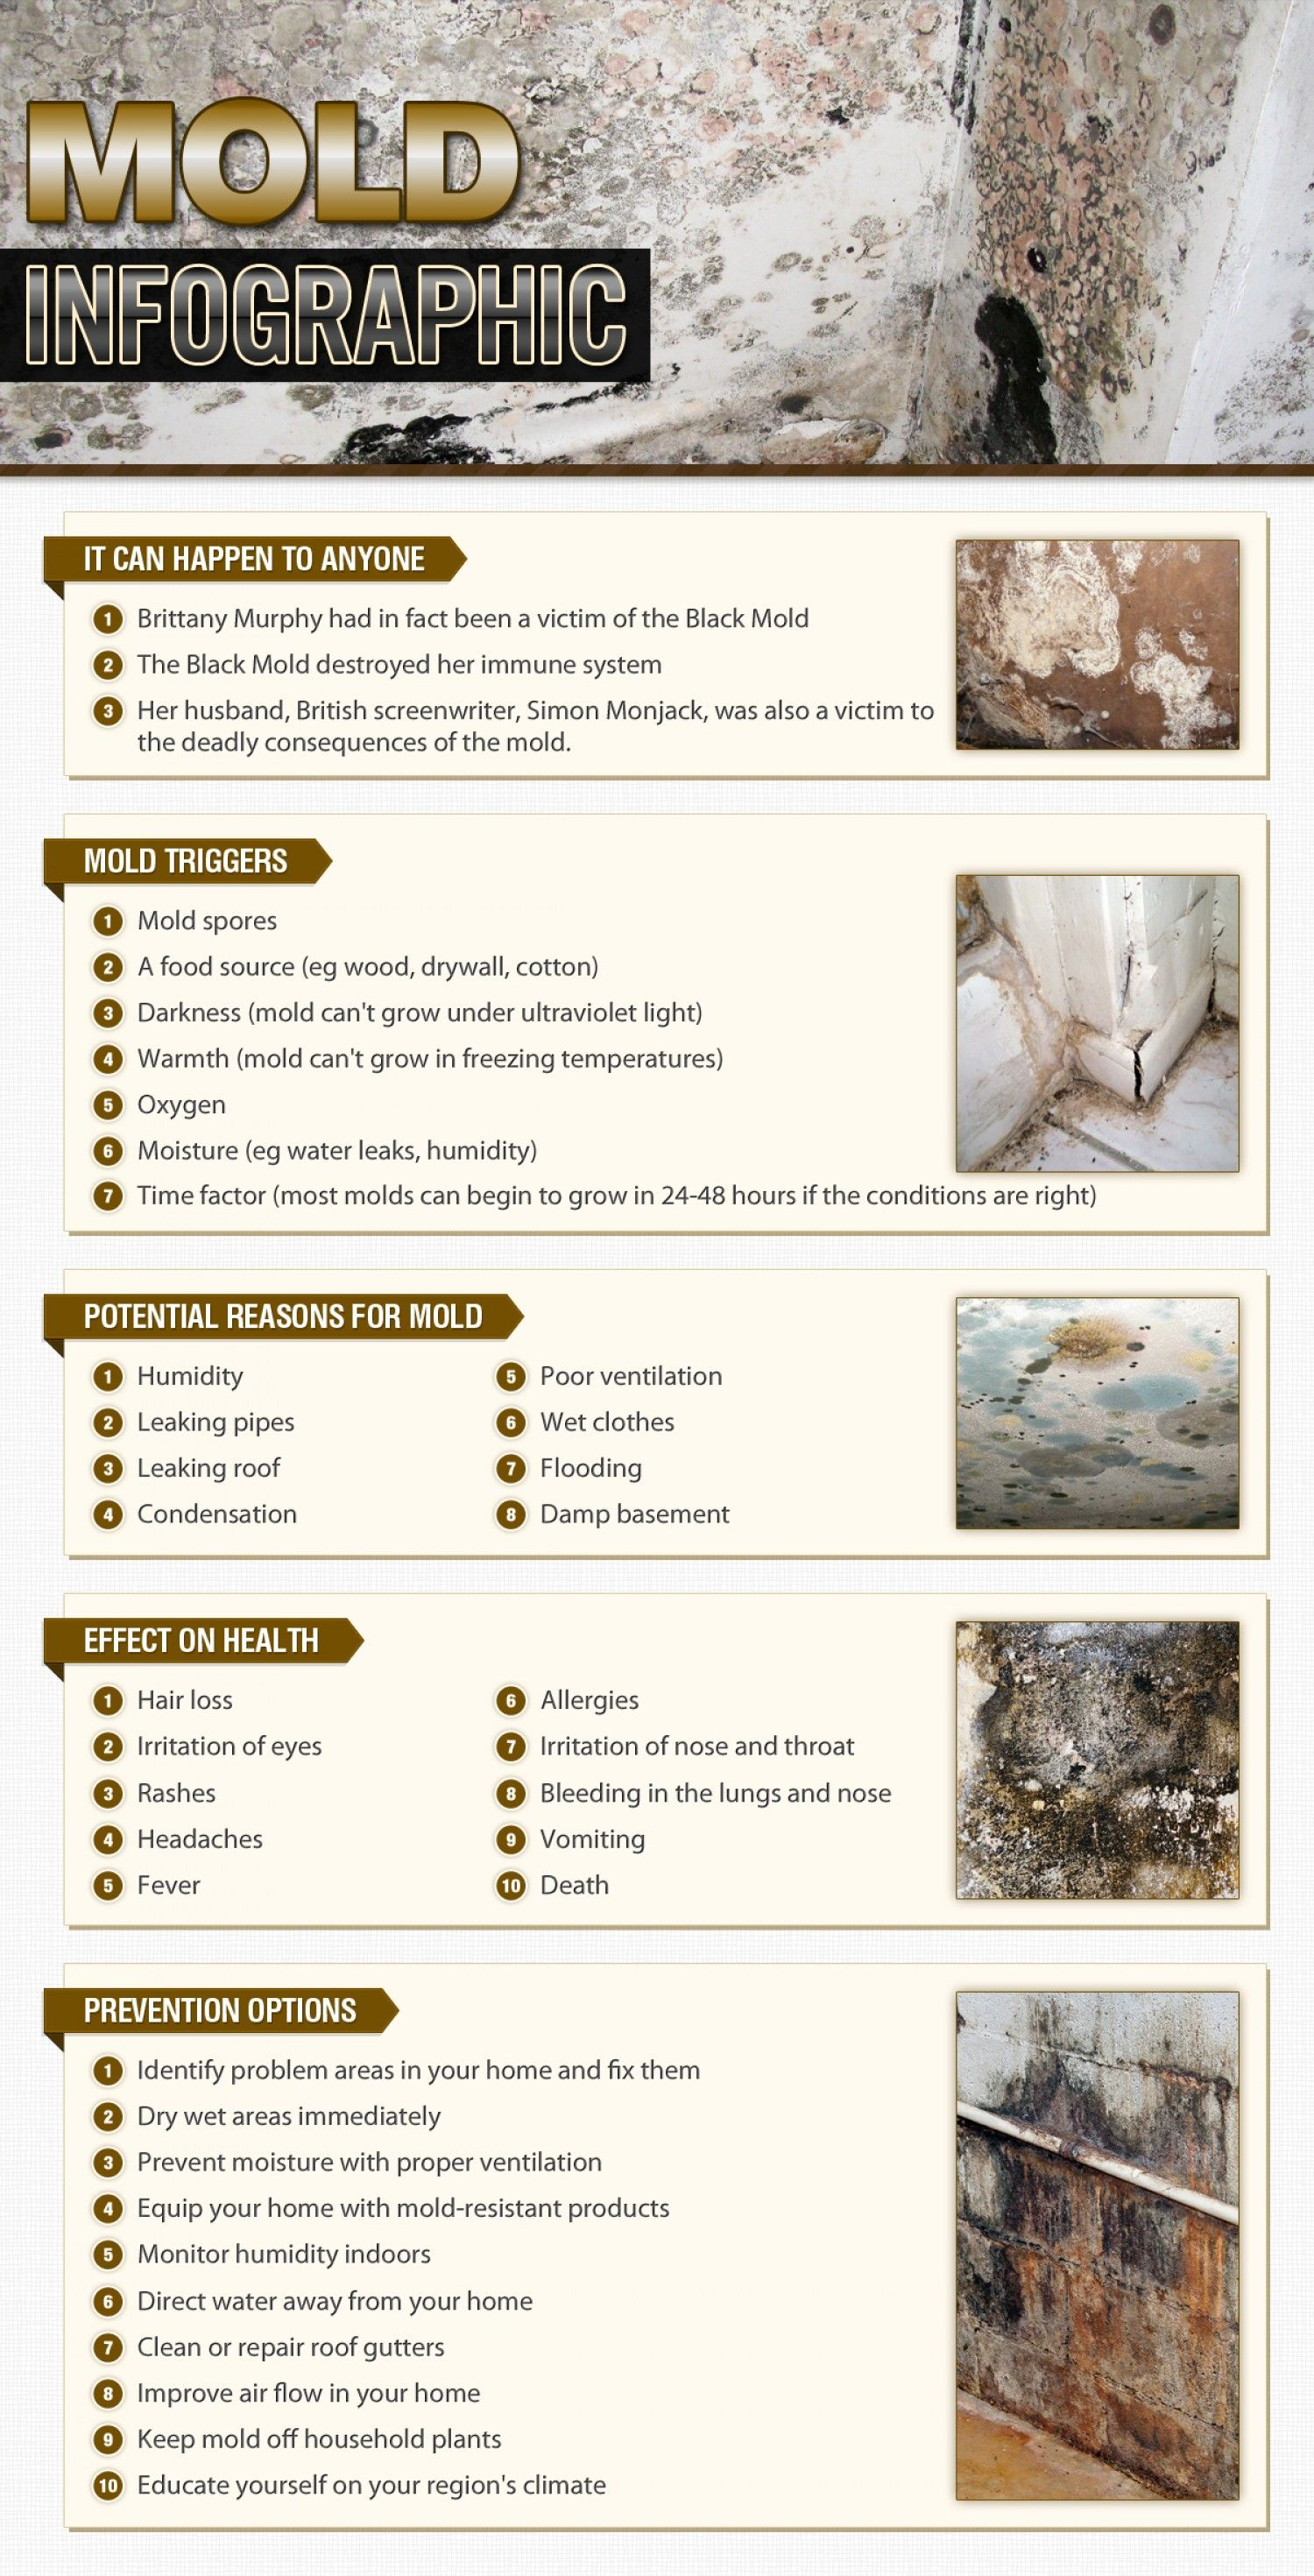 Mold Shared By 911remediation Published Feb 16 2017 In Business Get A Visual Look At Our Infographic That Include Triggers Potential Reasons